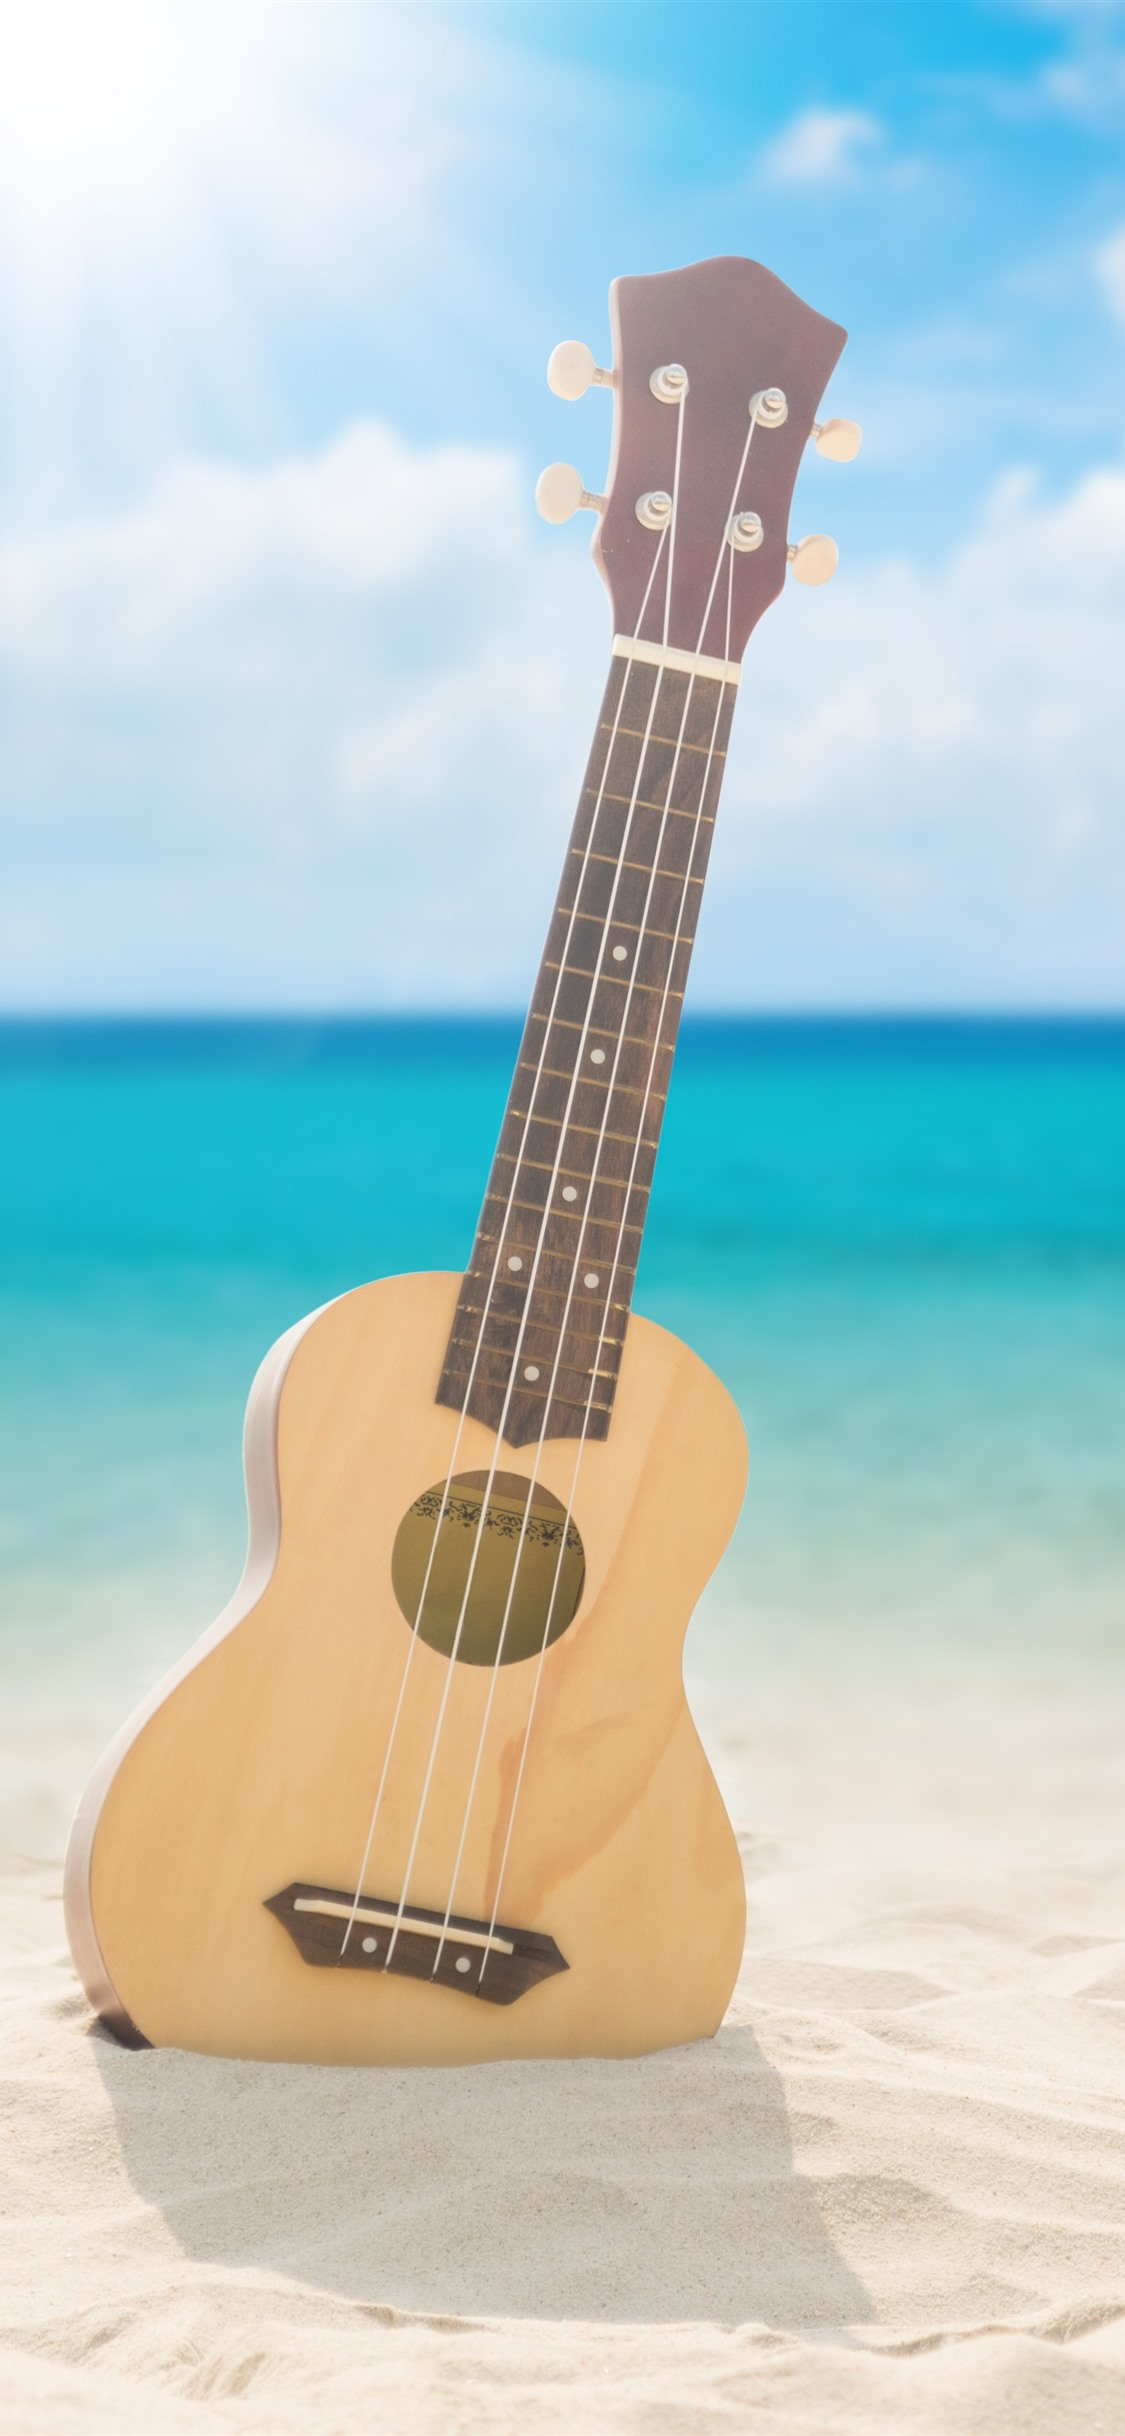 Guitar Beach Sea Clouds Sunshine 1242x2688 Iphone 11 Pro Xs Max Wallpaper Background Picture Image